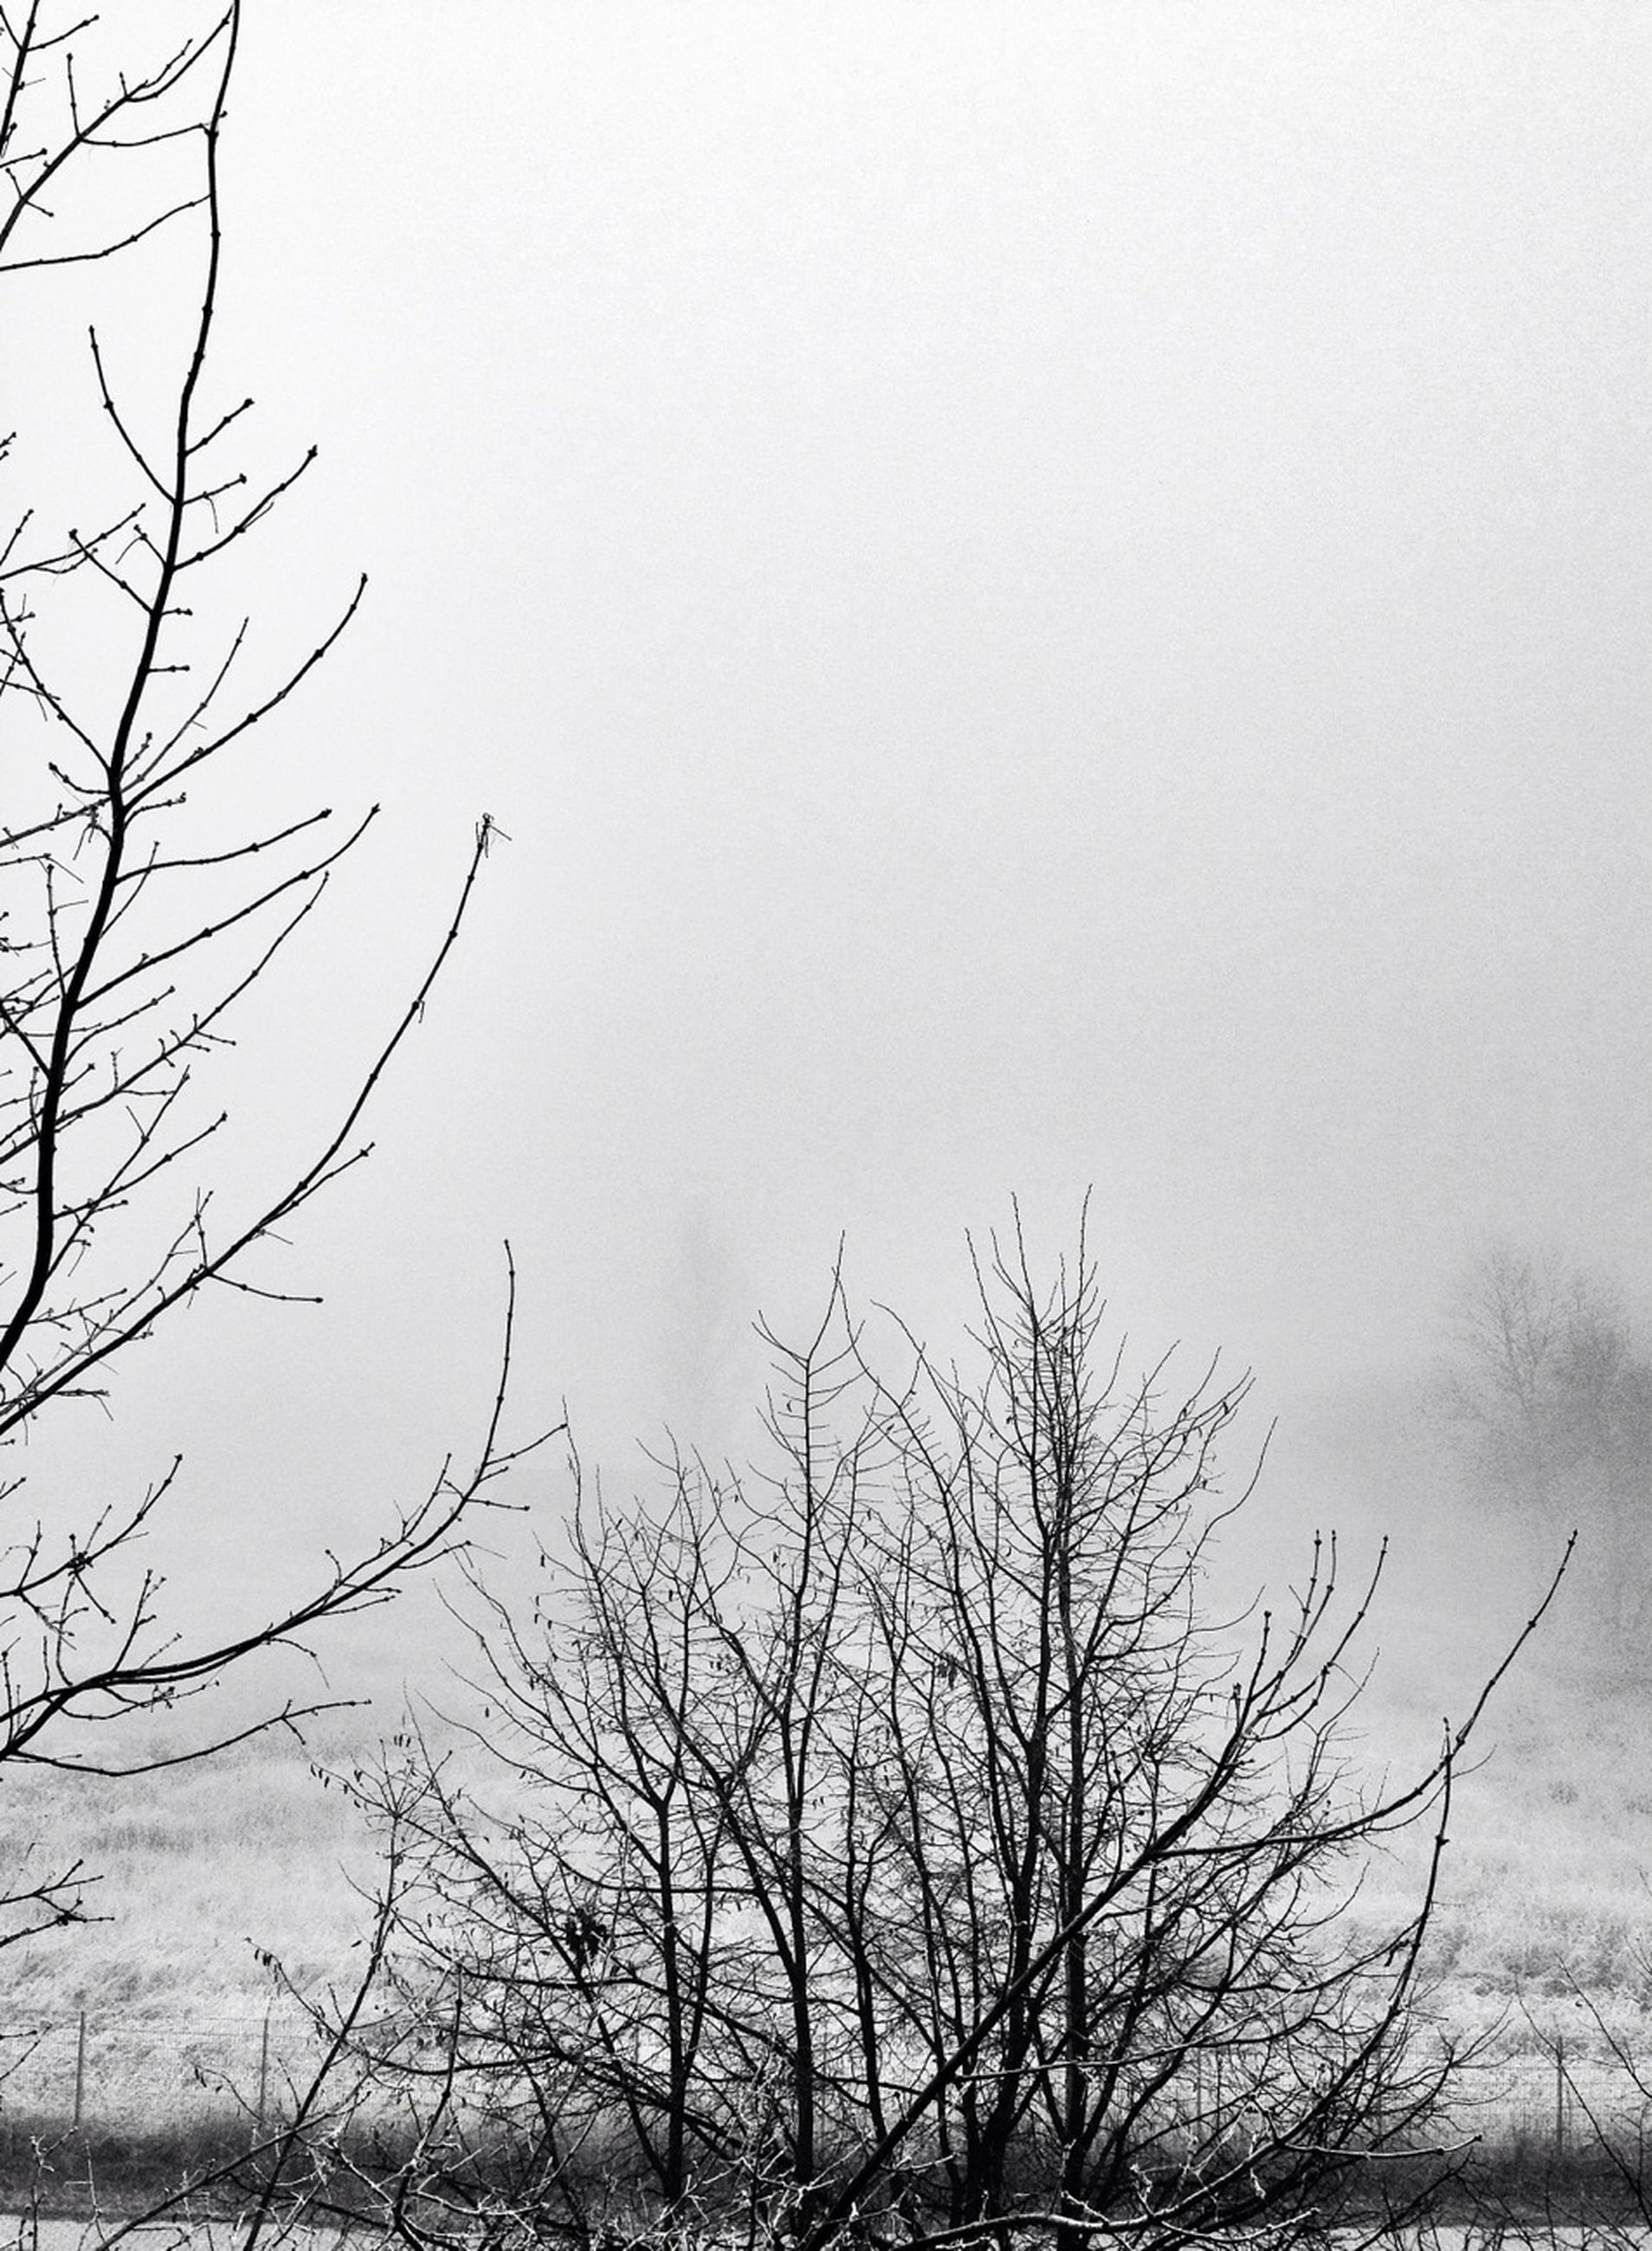 bare tree, branch, tree, clear sky, tranquility, low angle view, copy space, nature, beauty in nature, scenics, weather, tranquil scene, winter, cold temperature, sky, outdoors, no people, day, season